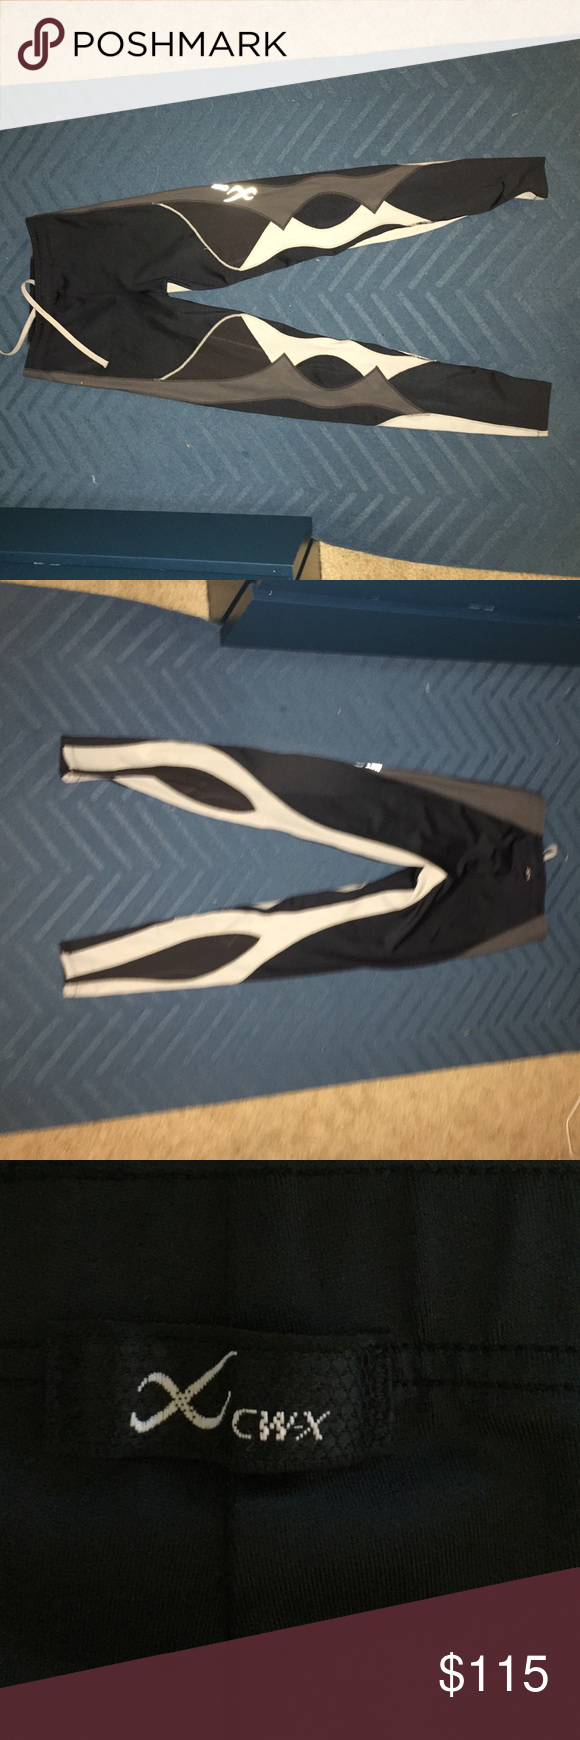 Multicolored CW-X Compression Leggings Black, gray, and white CW-X leggings. Worn a few times, great condition. Offers welcome. Pants Leggings